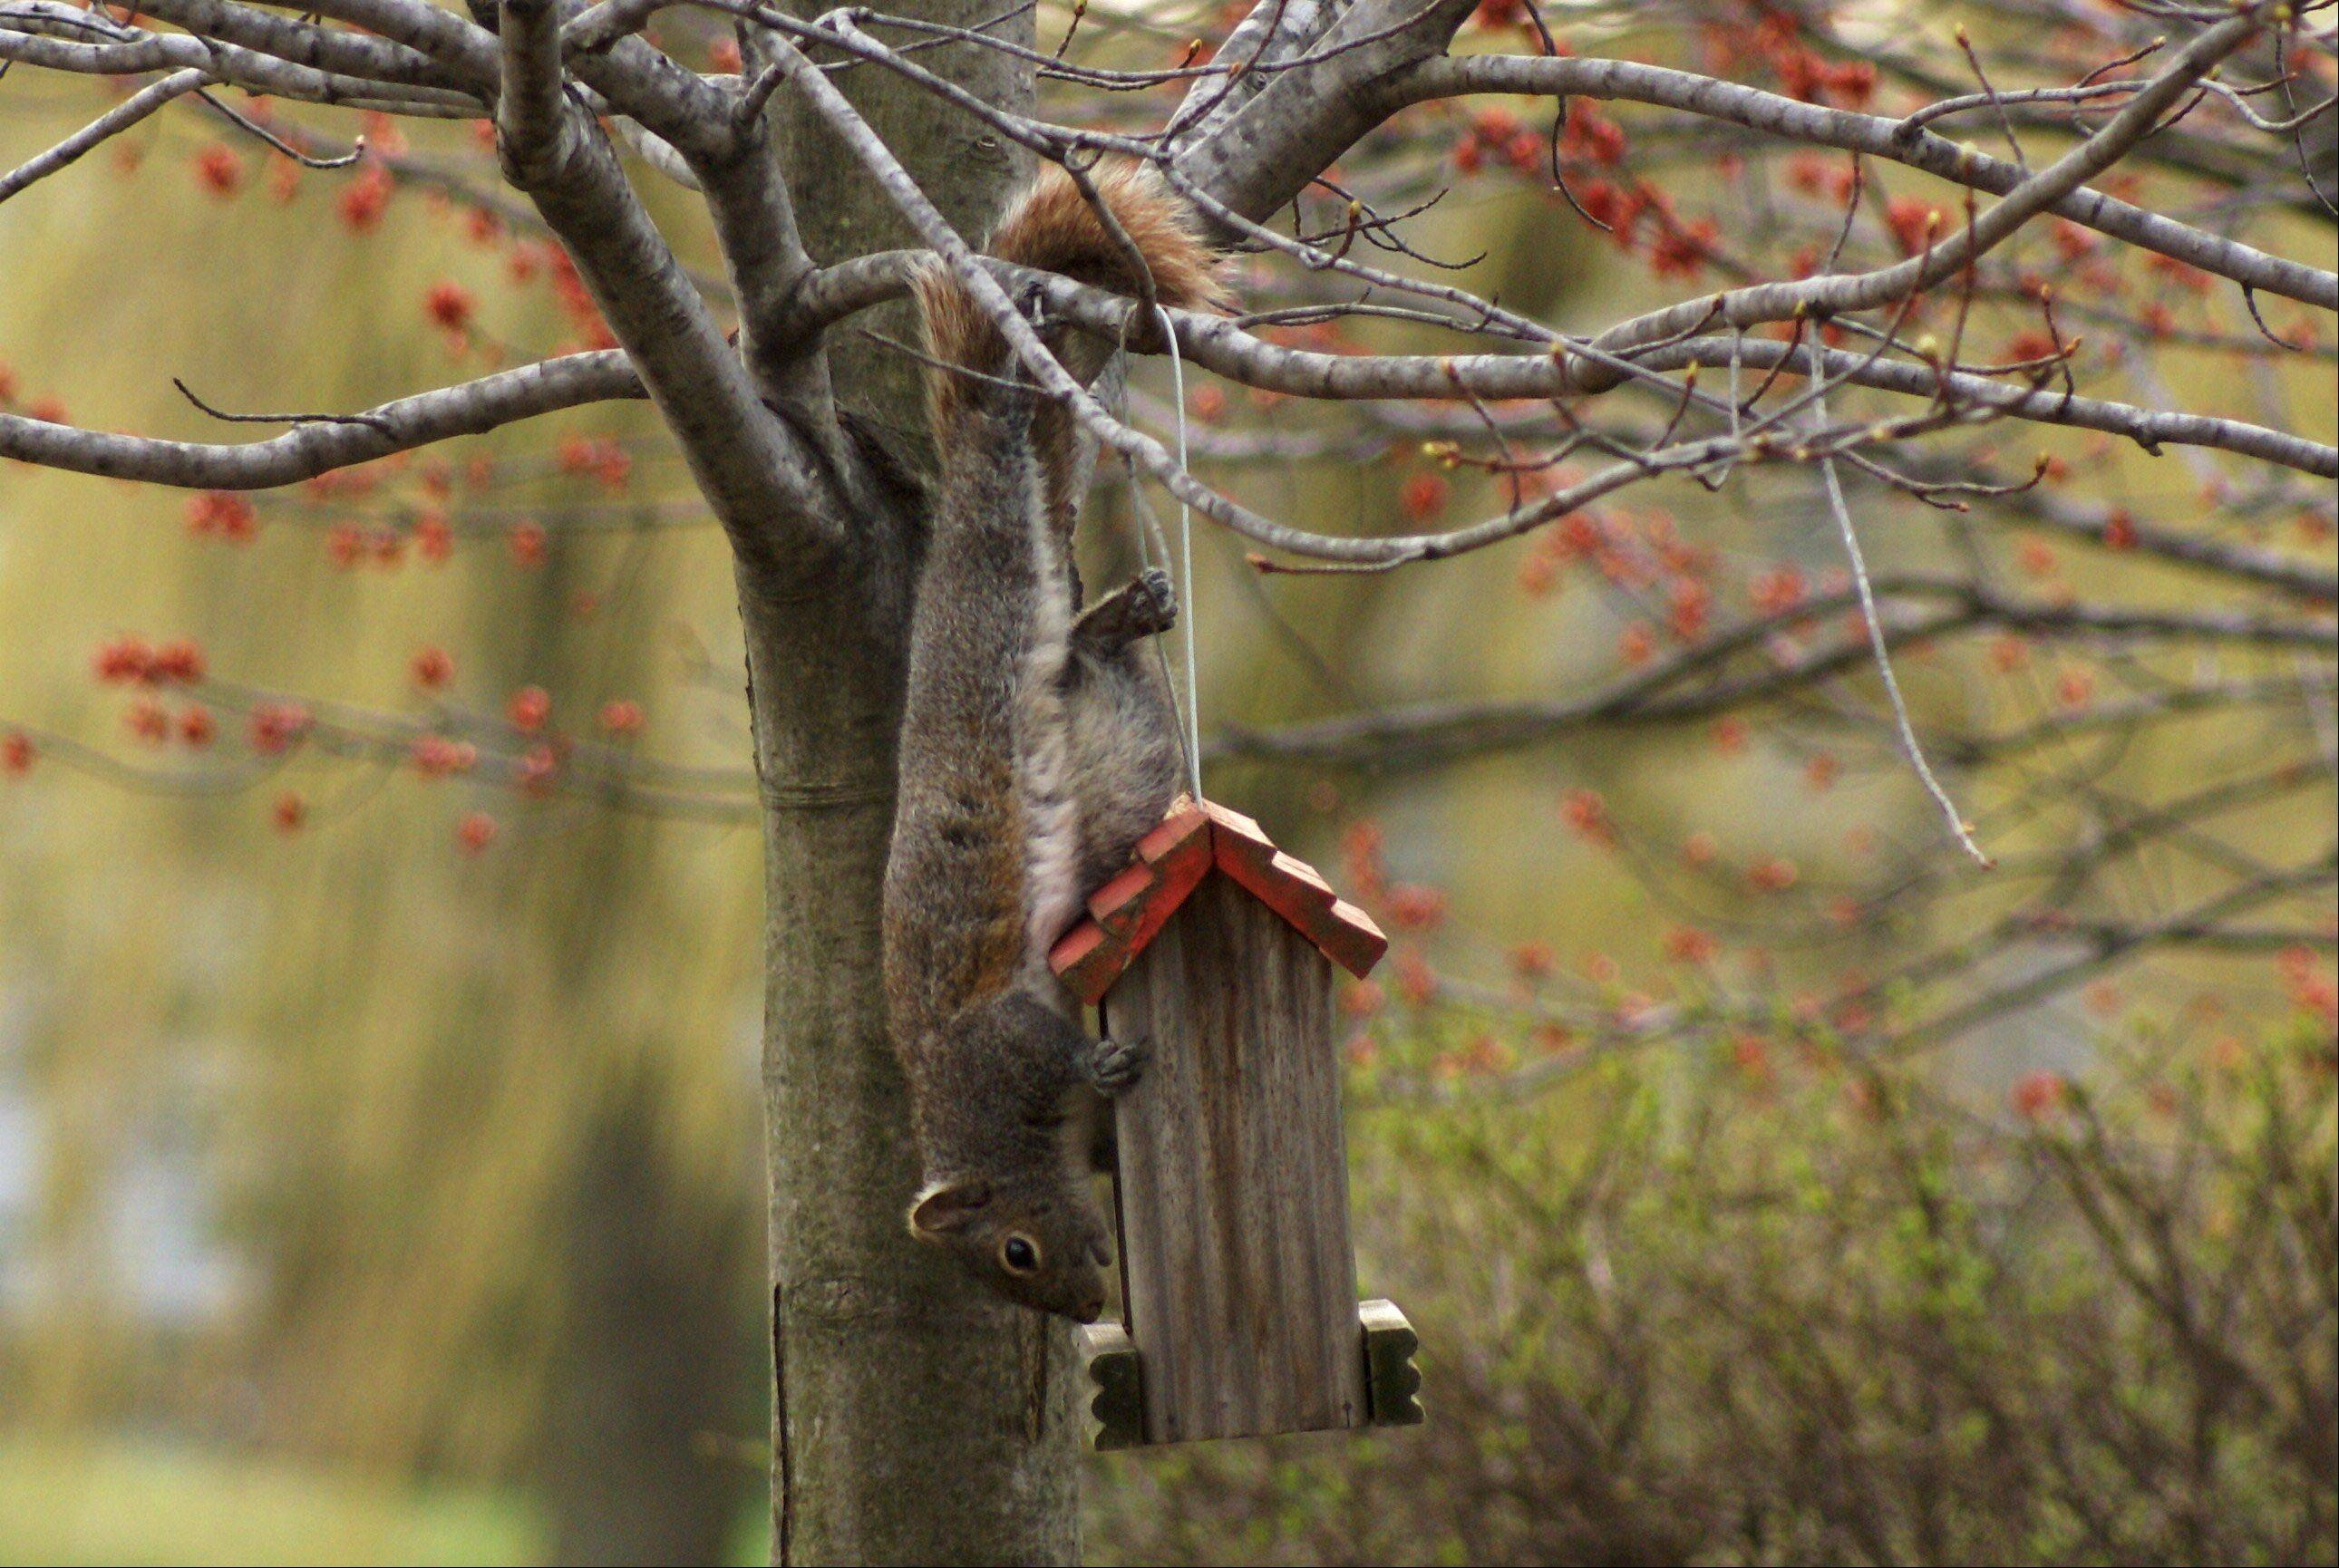 A squirrel tries to steal bird food from a feeder in a Buffalo Grove backyard.